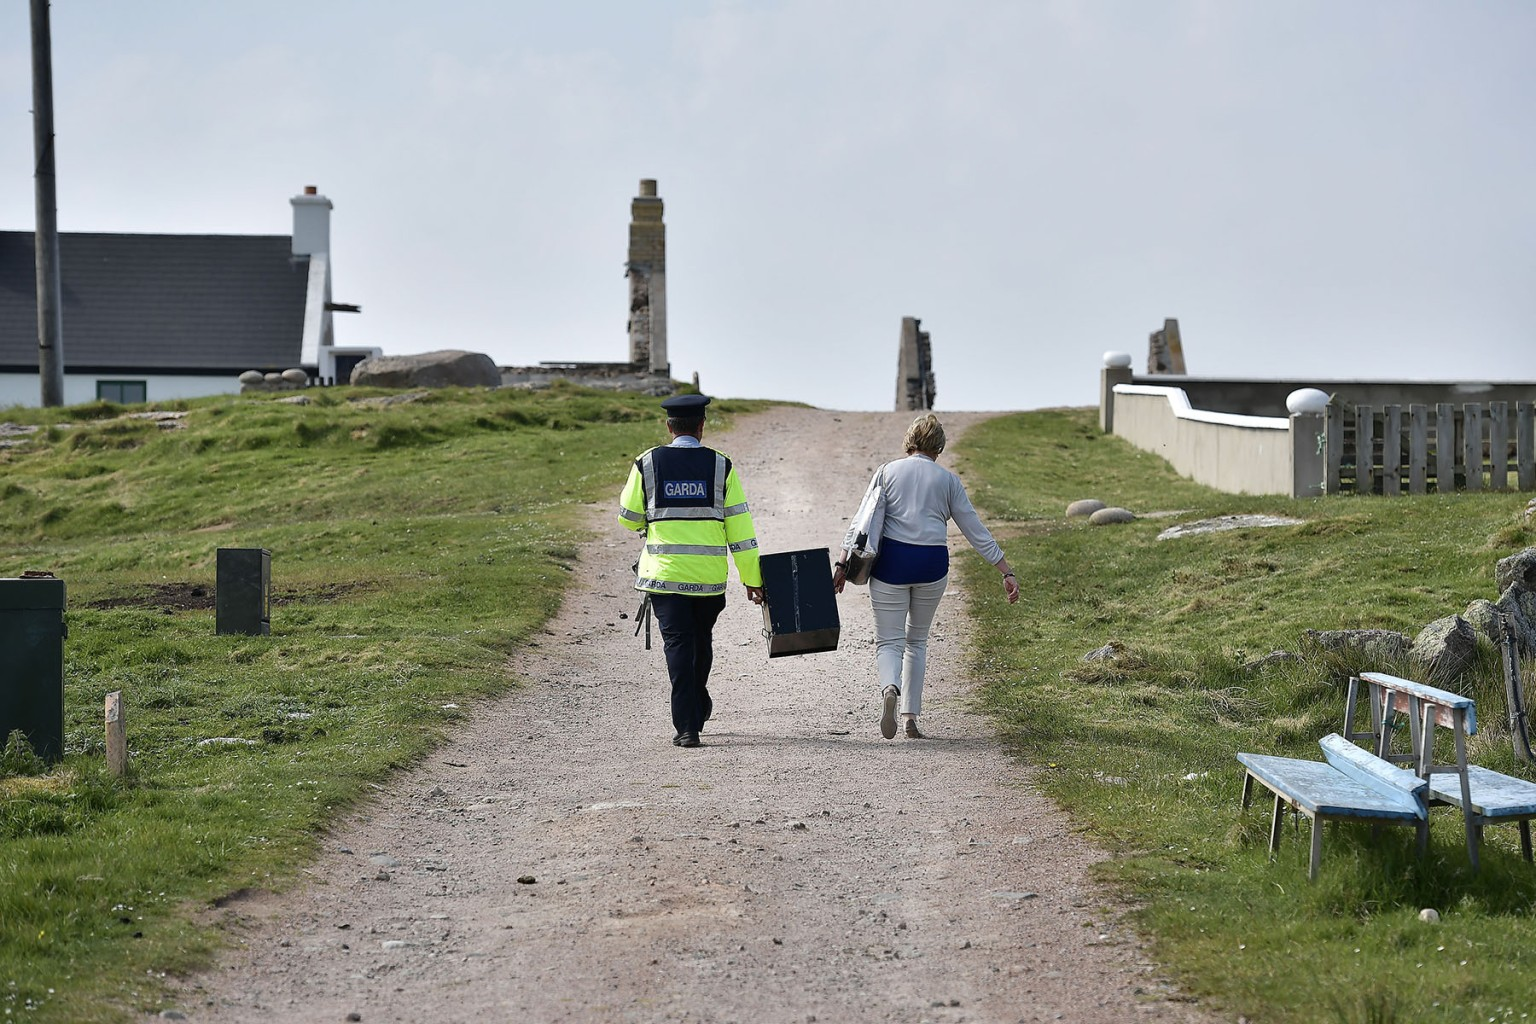 Gola Island officers carry a ballot box as they walk to the local polling station on May 24 as voting takes place a day earlier than the Irish main land. Ireland voted on a referendum to decide whether or not to abolish the 8th amendment which makes abortions illegal in the country. Charles McQuillan/Getty Images